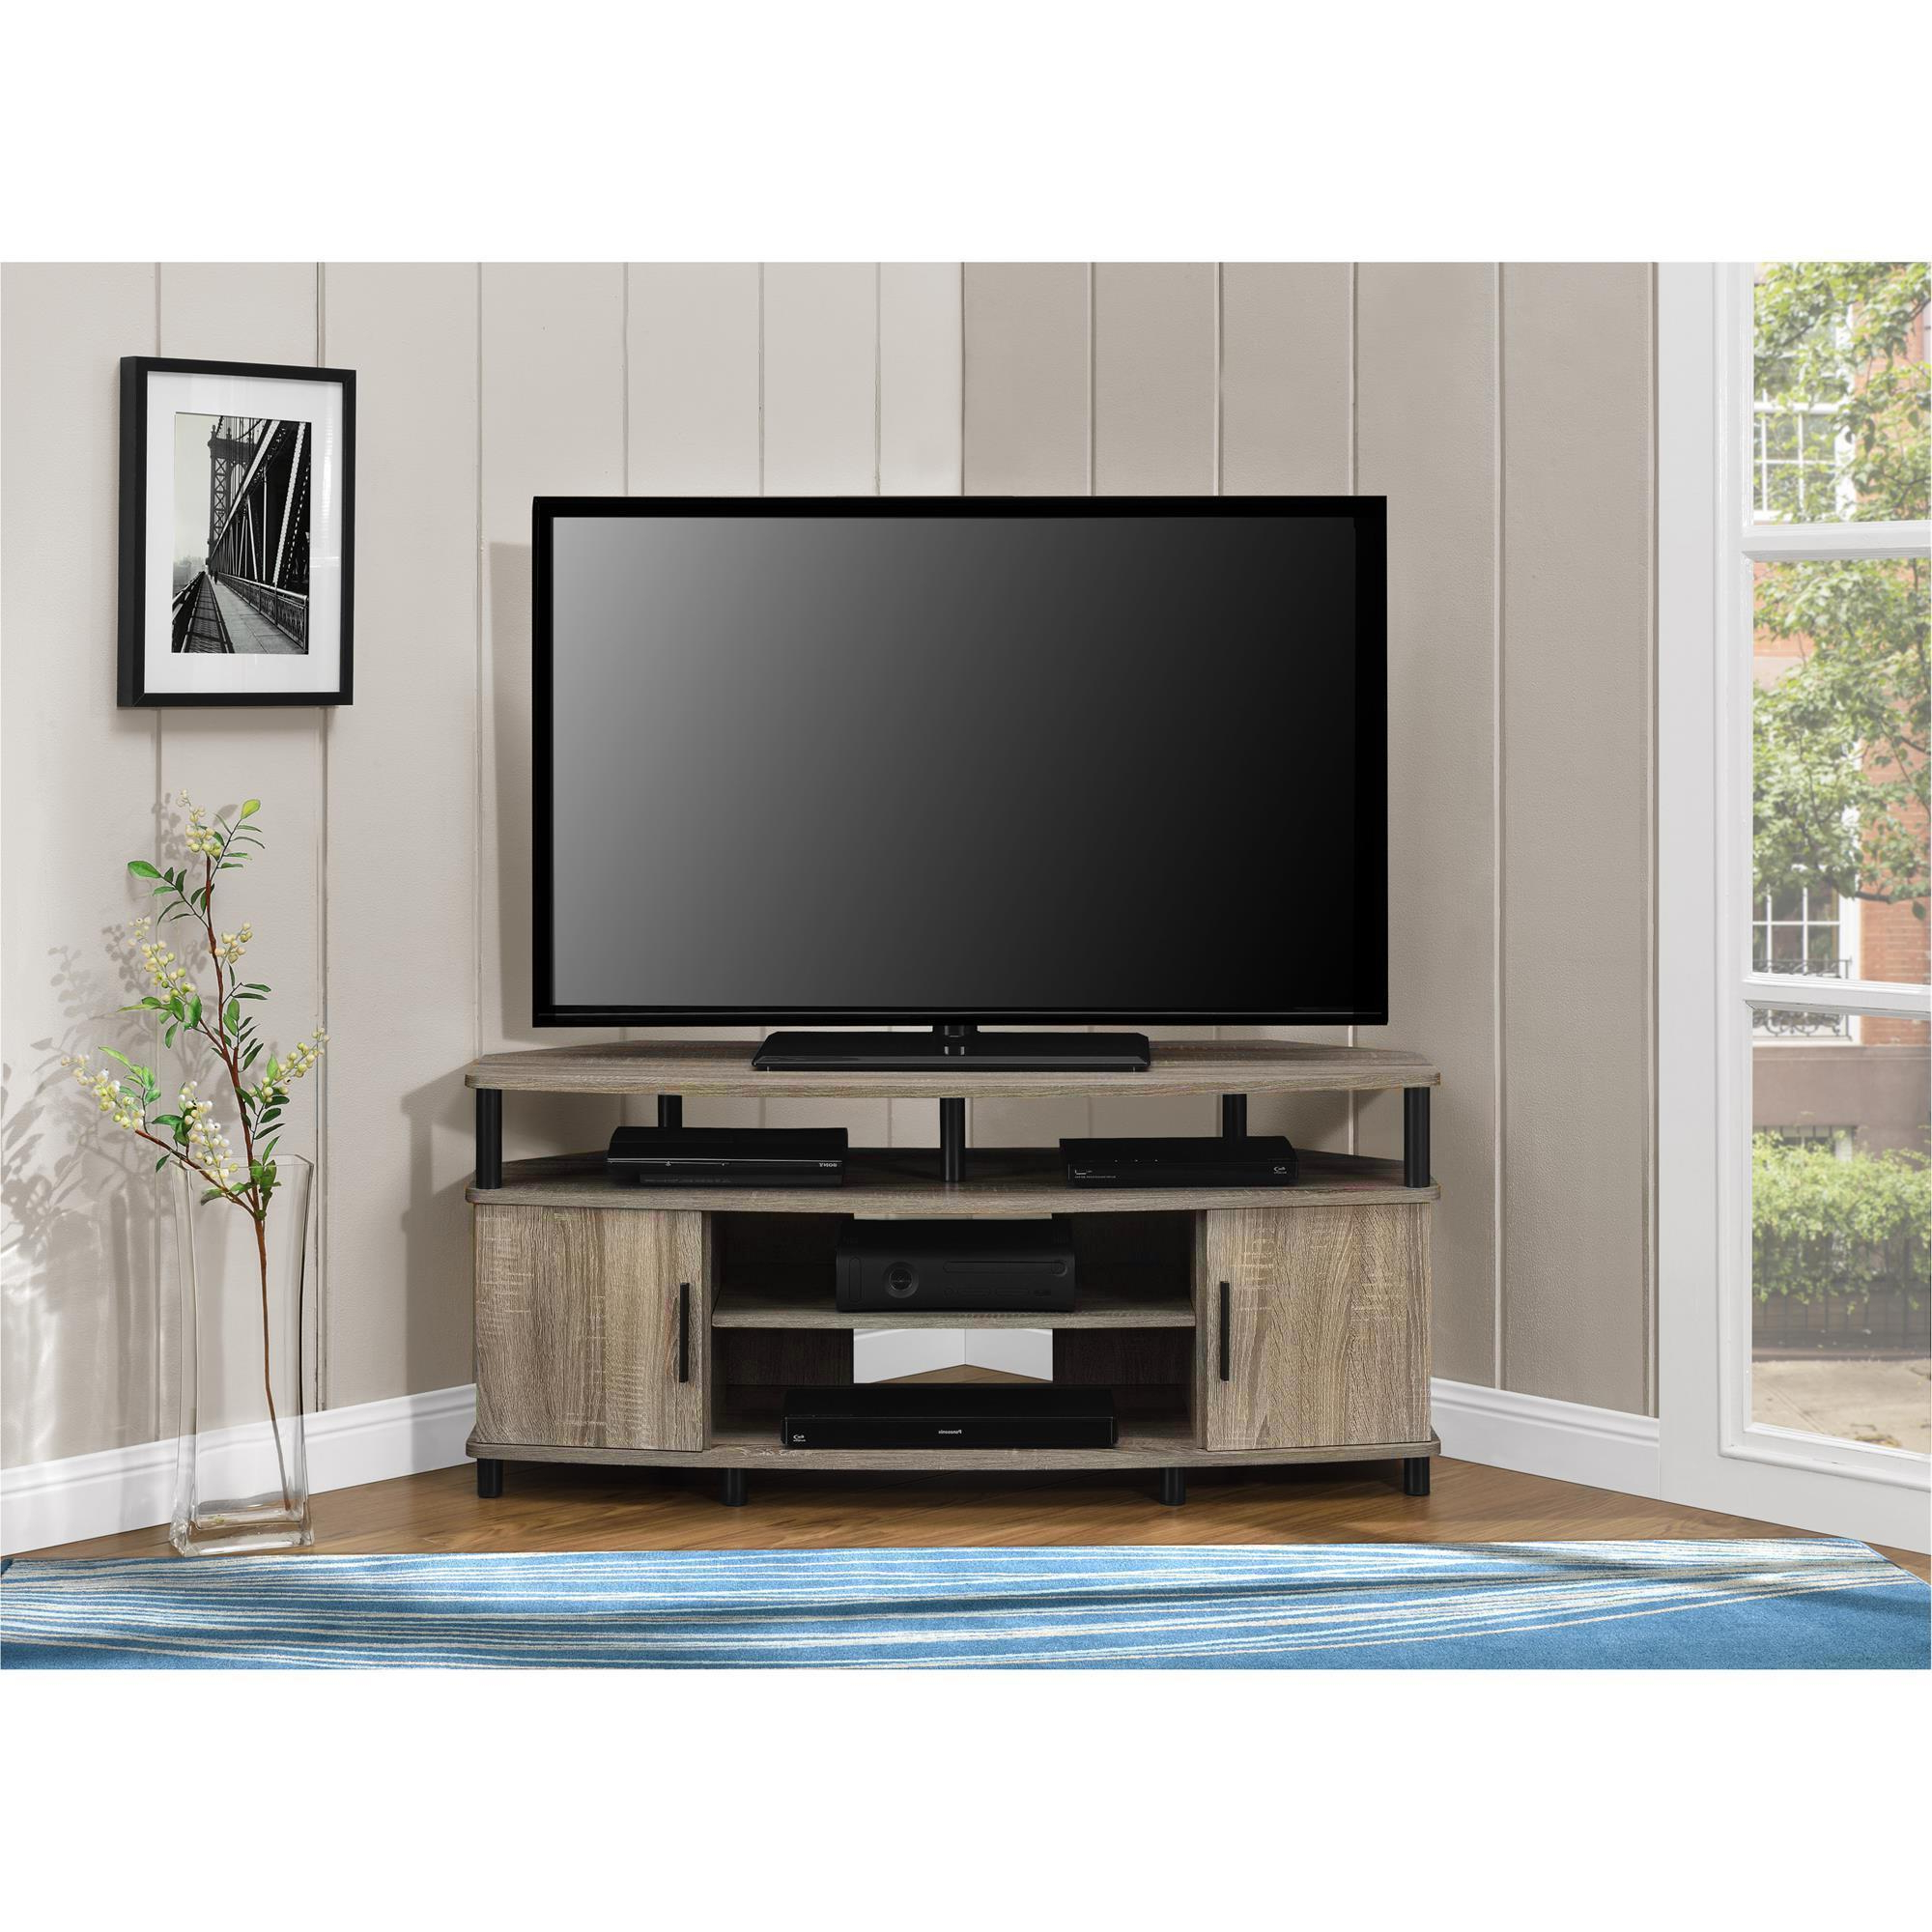 Shop Ameriwood Home Carson 50 Inch Sonoma Oak Corner Tv Stand – Free With Regard To Century Blue 60 Inch Tv Stands (View 15 of 20)